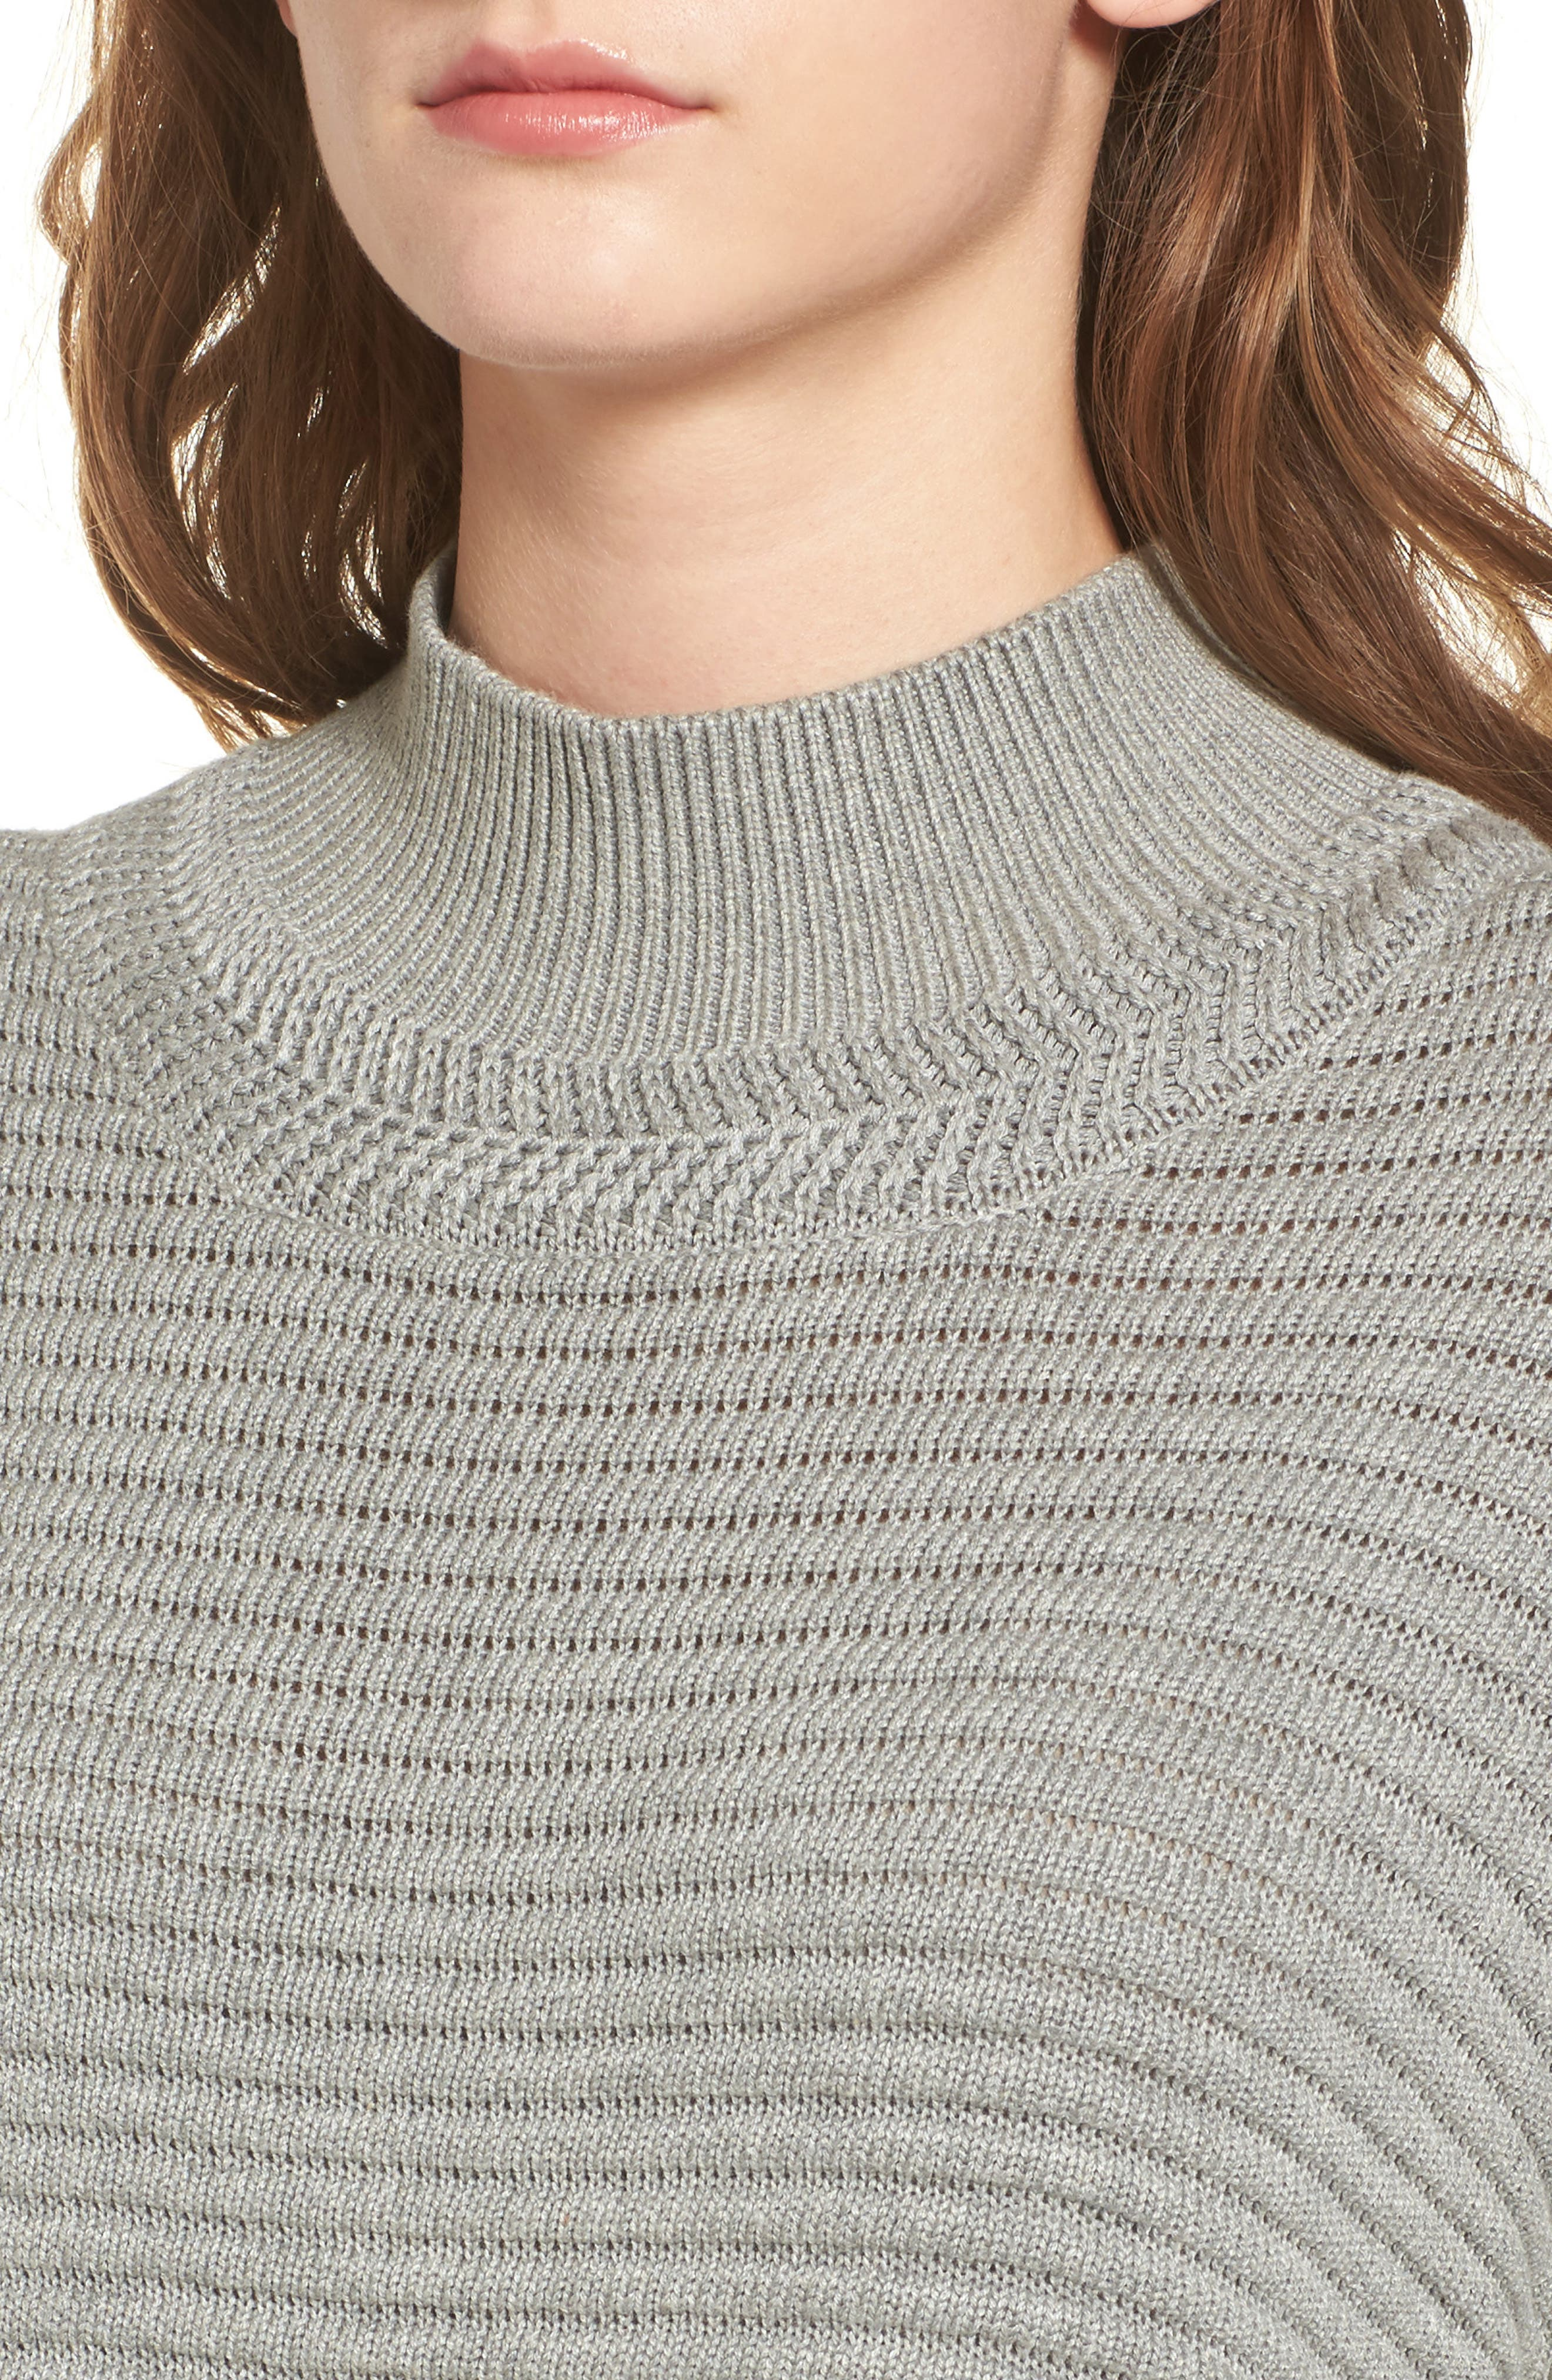 What Now Cotton Sweater,                             Alternate thumbnail 4, color,                             020